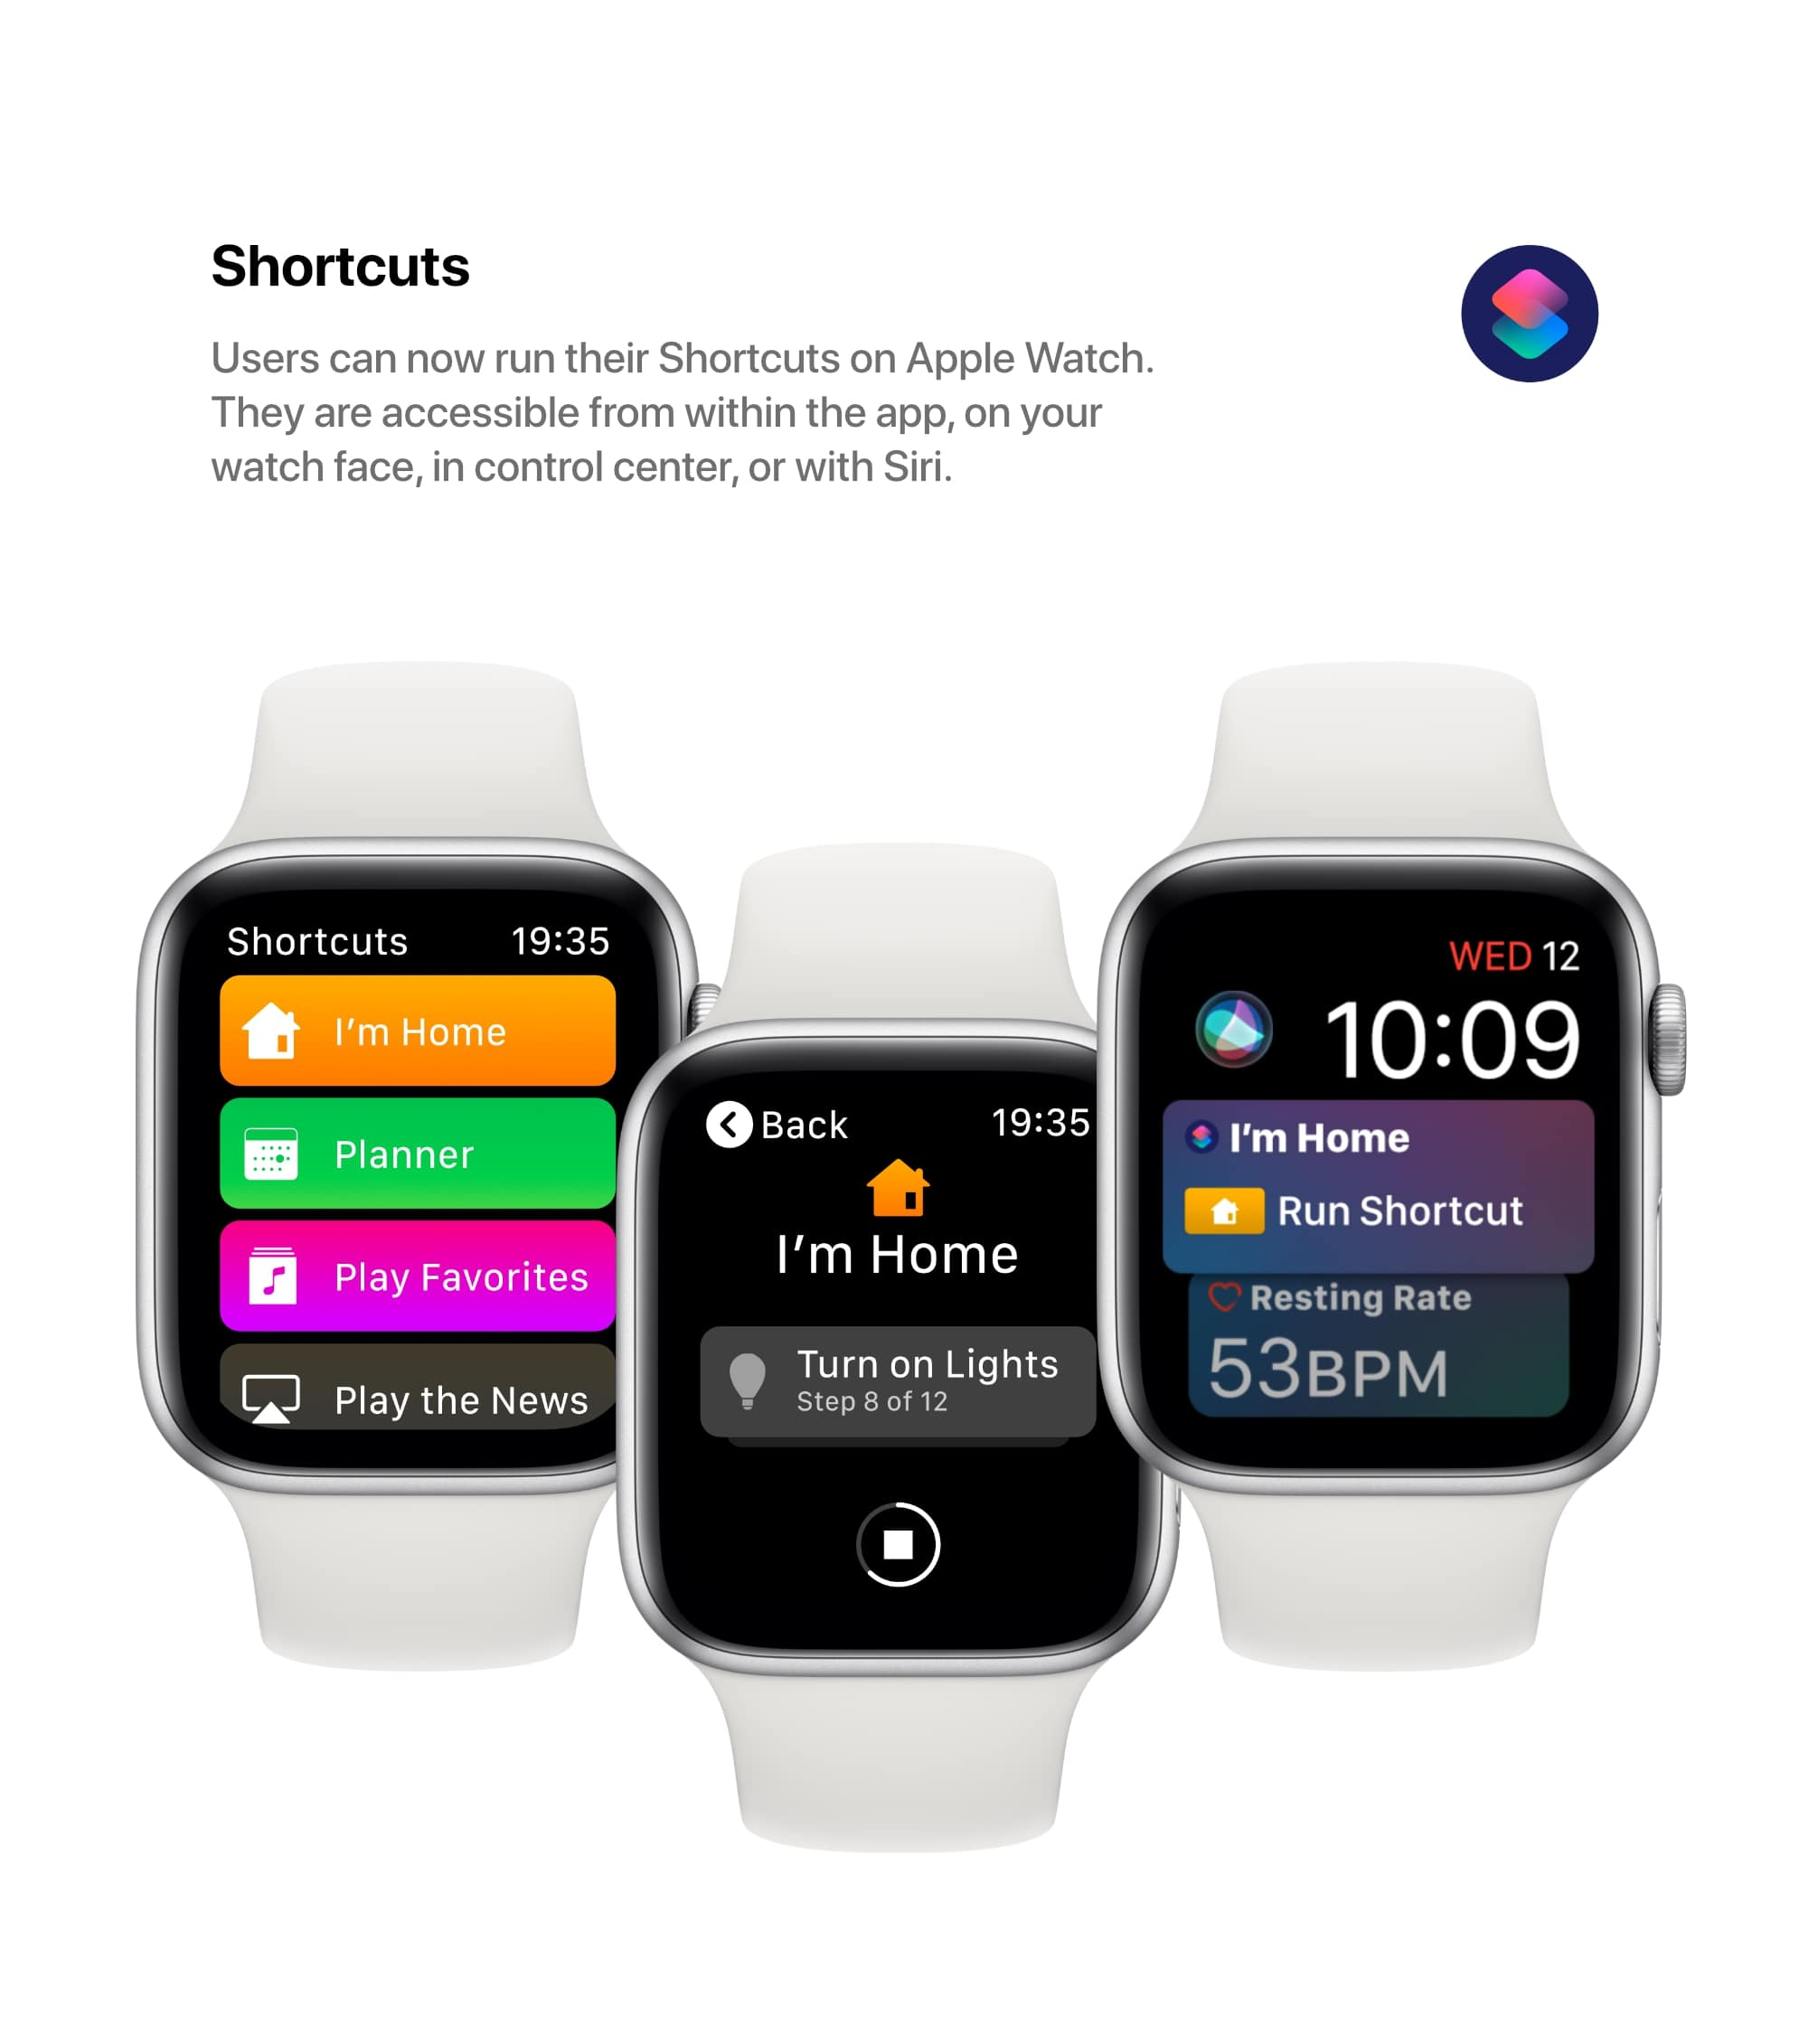 Apple Watch Watch Os 6 Concept 12